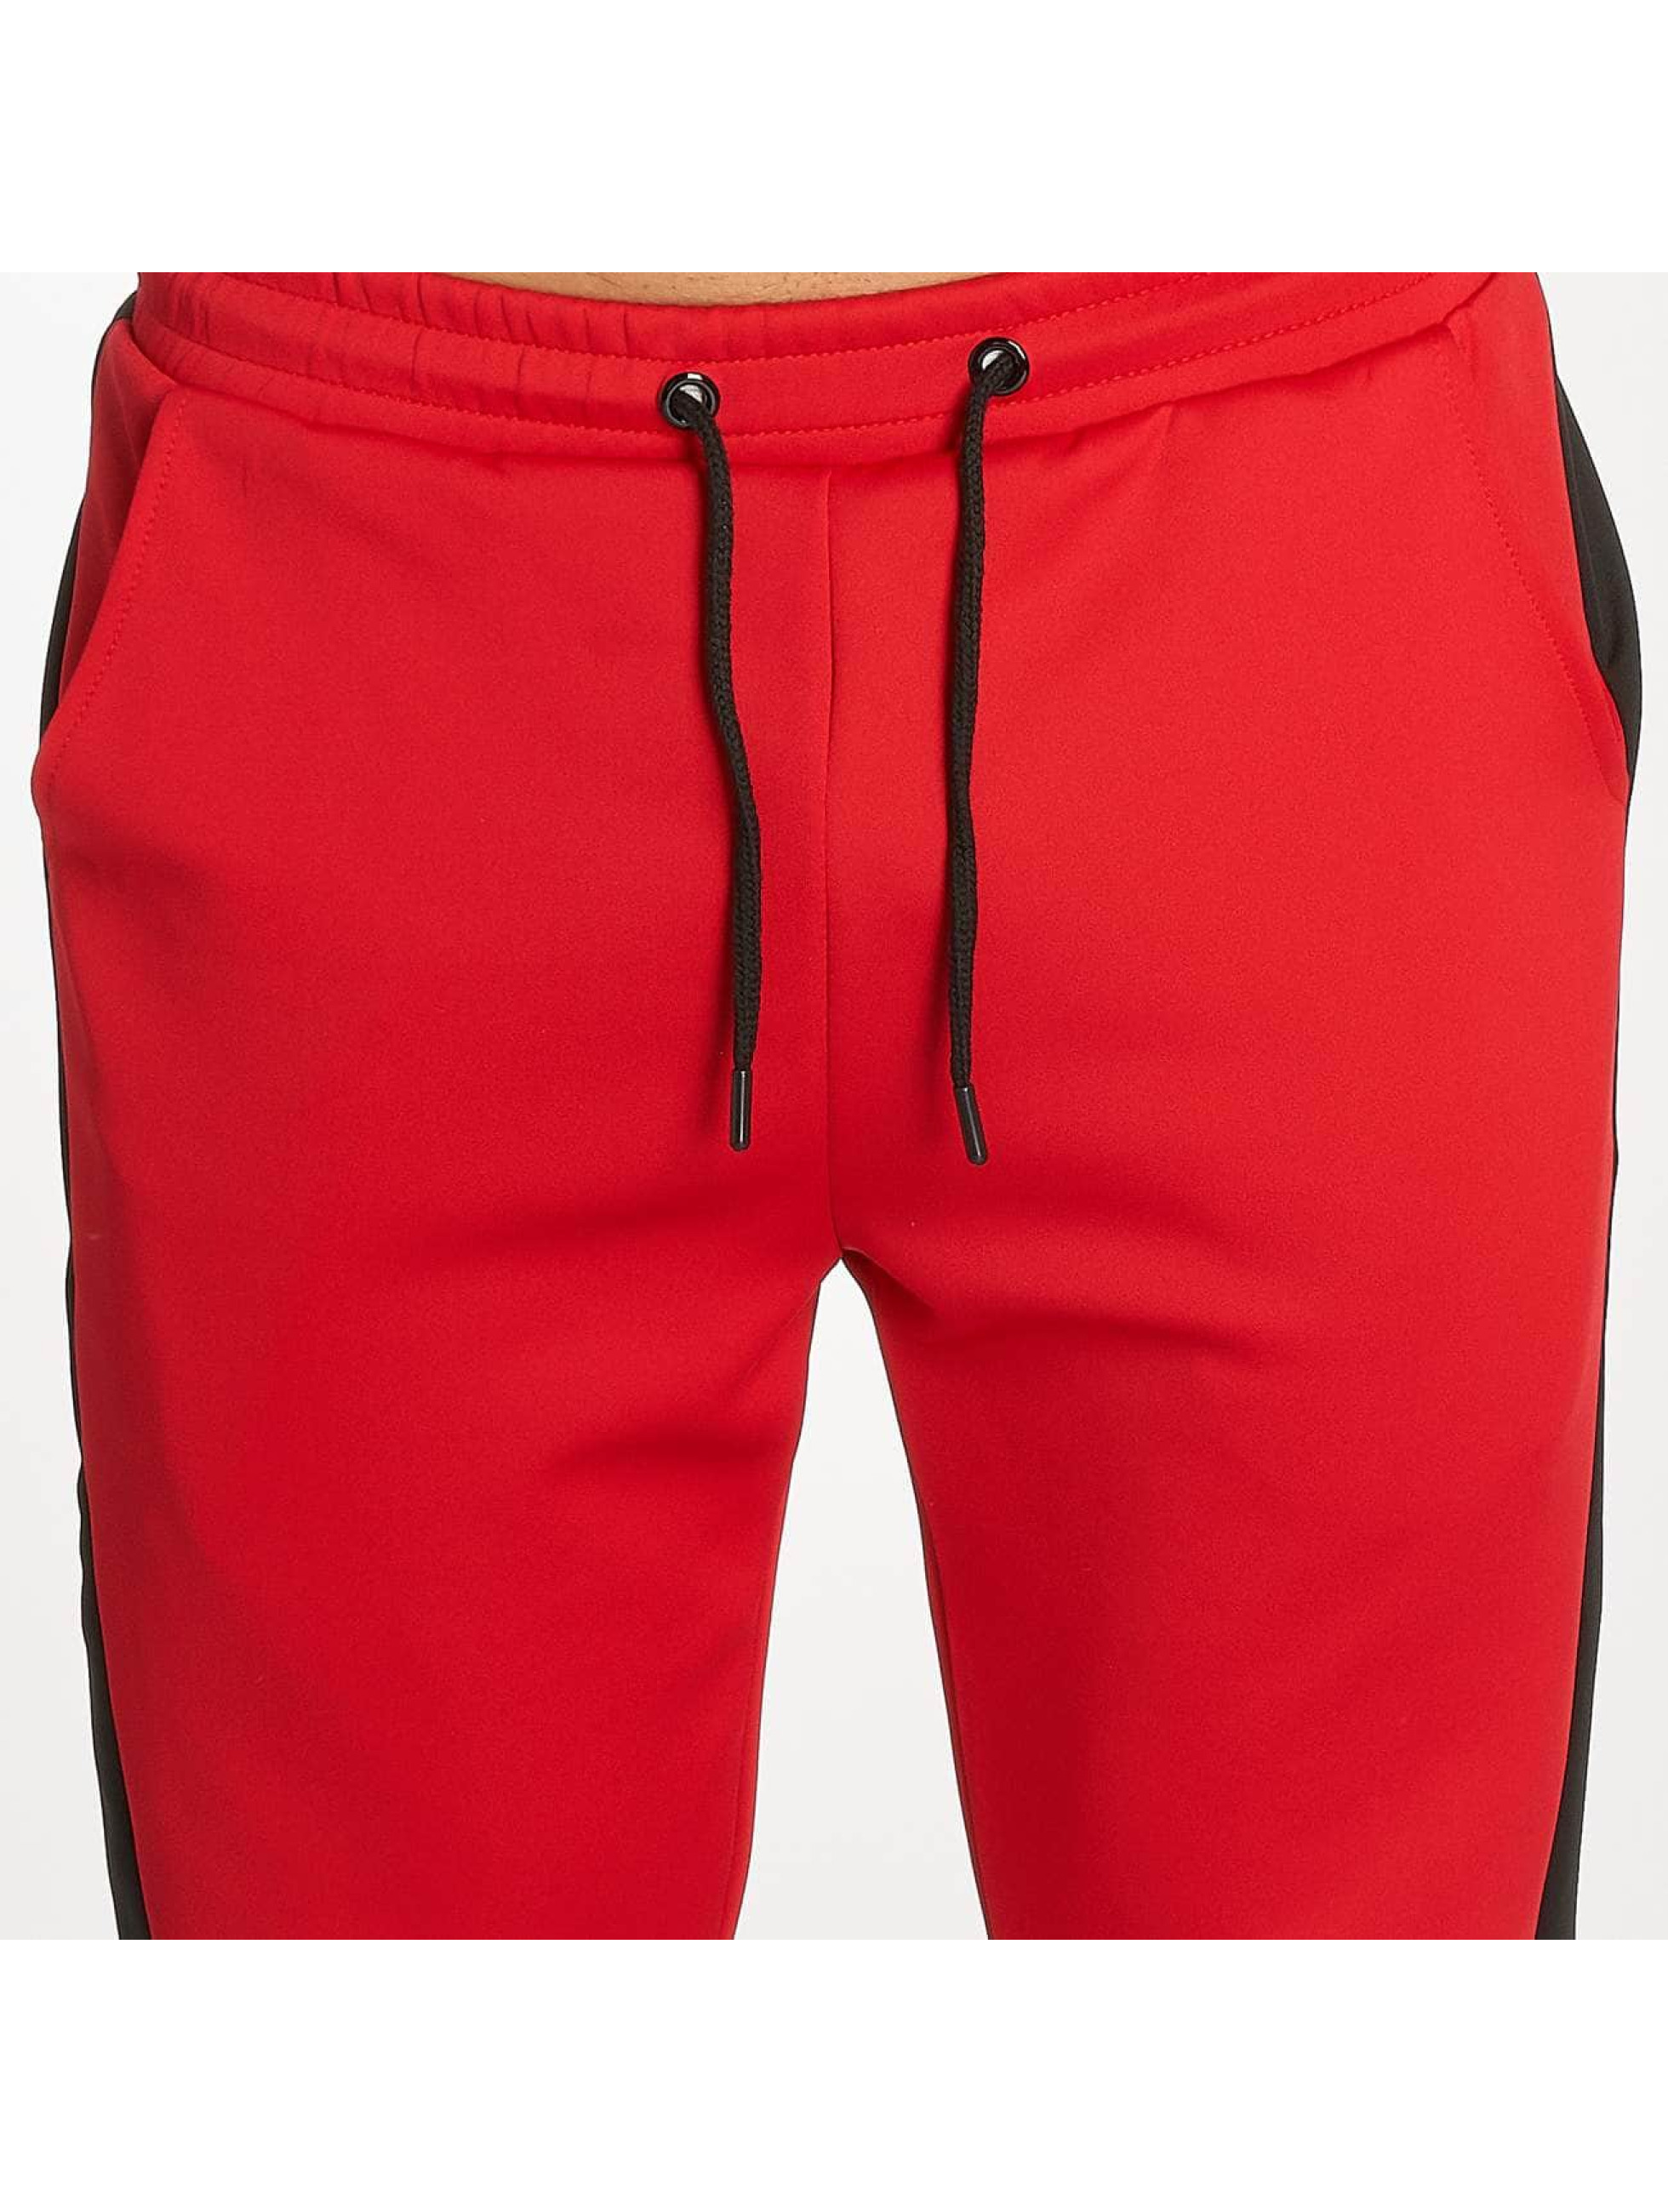 Zayne Paris Suits Two-Tone red